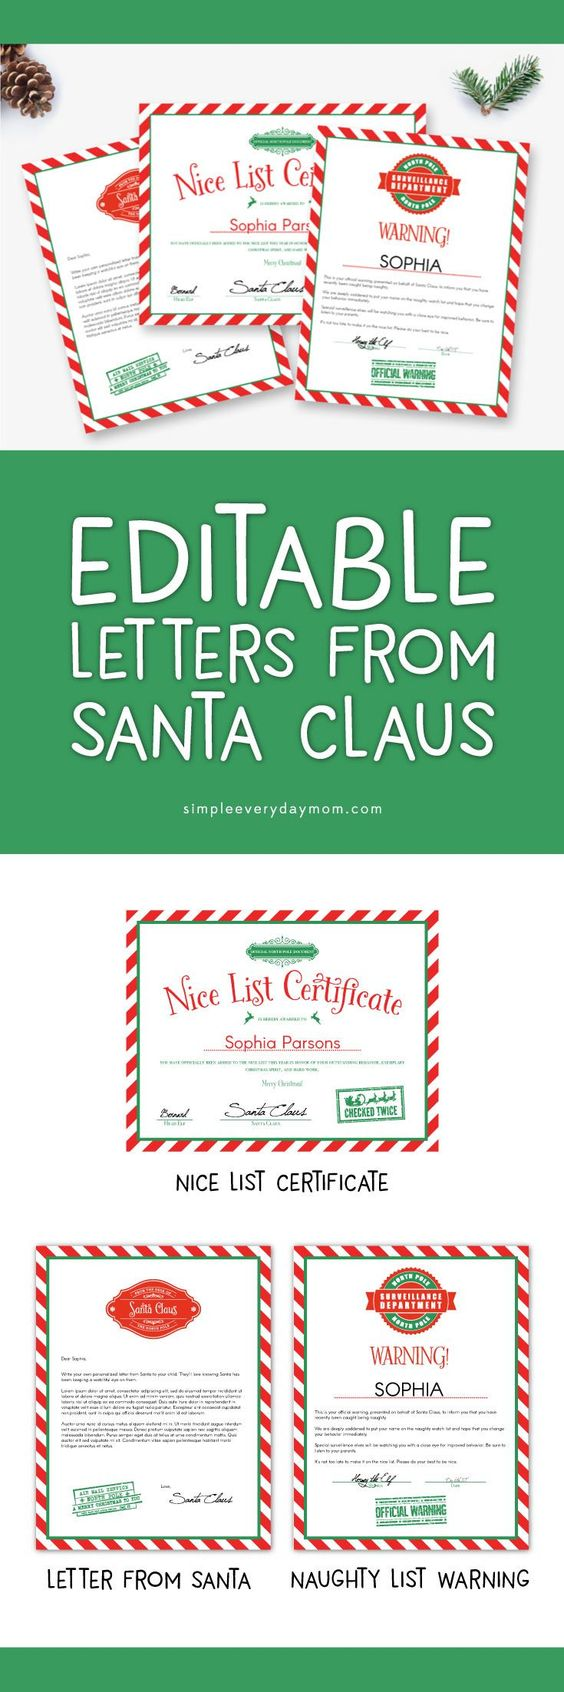 Nice list certificate from santa mistletoe gift package letters nice list certificate from santa mistletoe gift package letters and nice list certificates from santa pinterest nice list spiritdancerdesigns Image collections